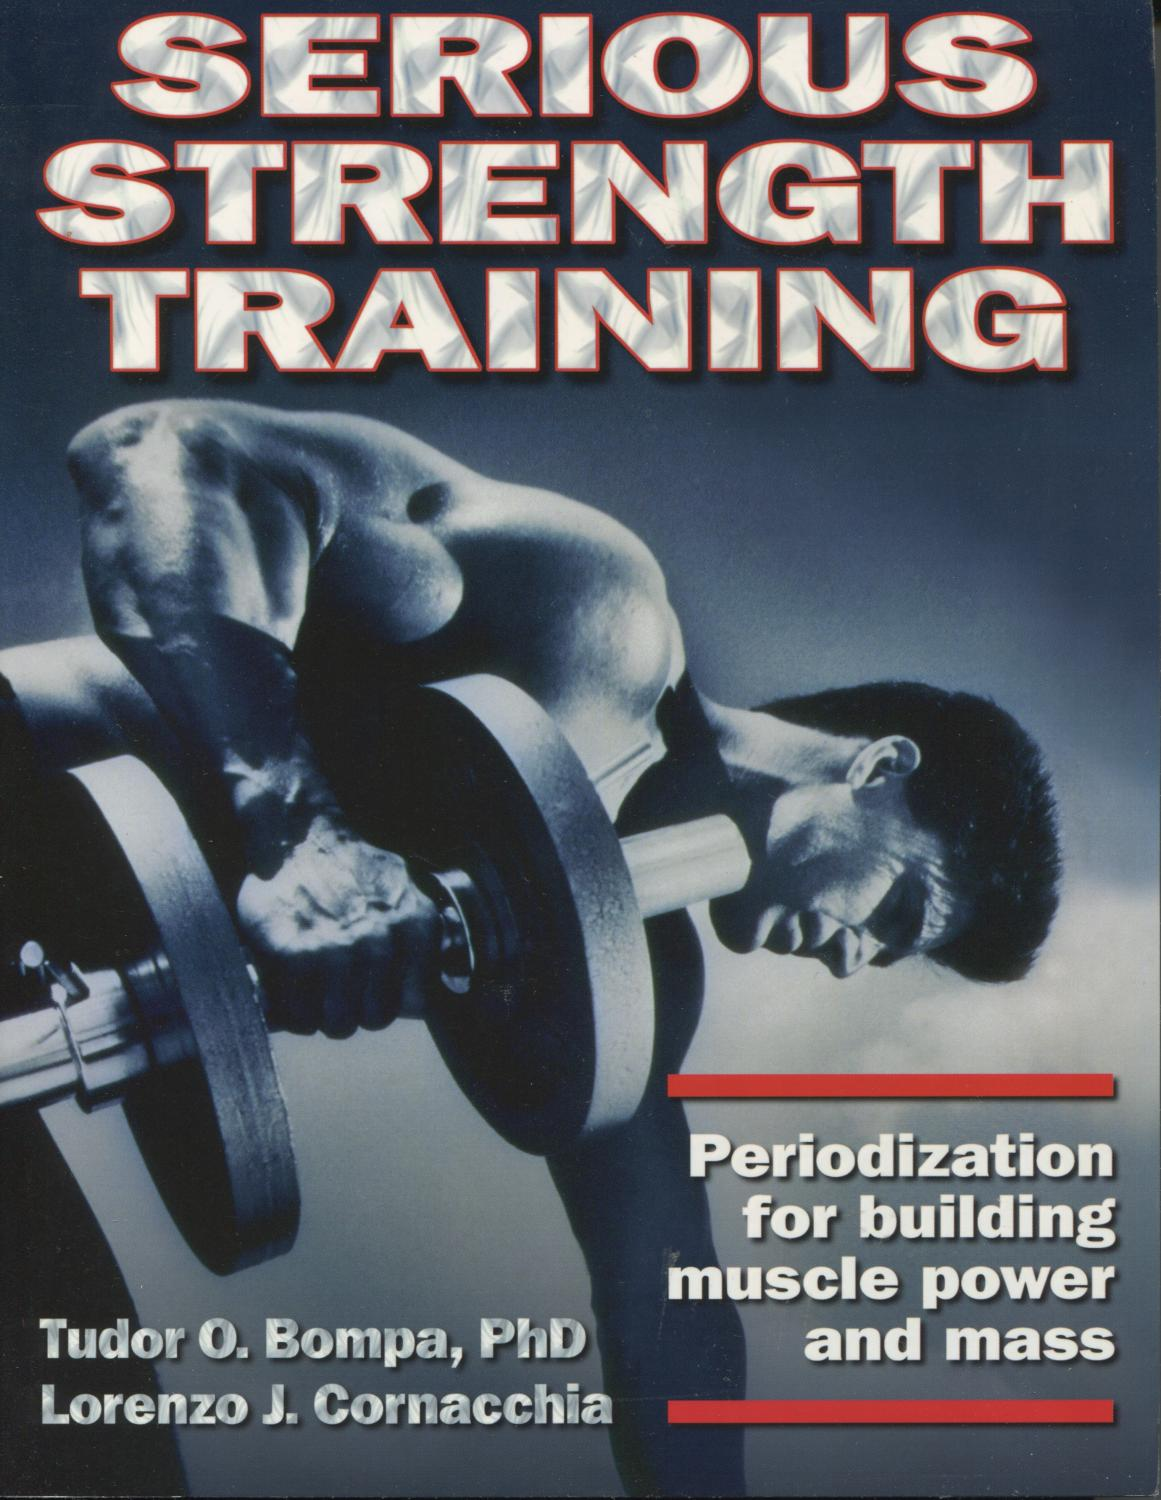 serious strength training: periodization for building muscle power, Muscles